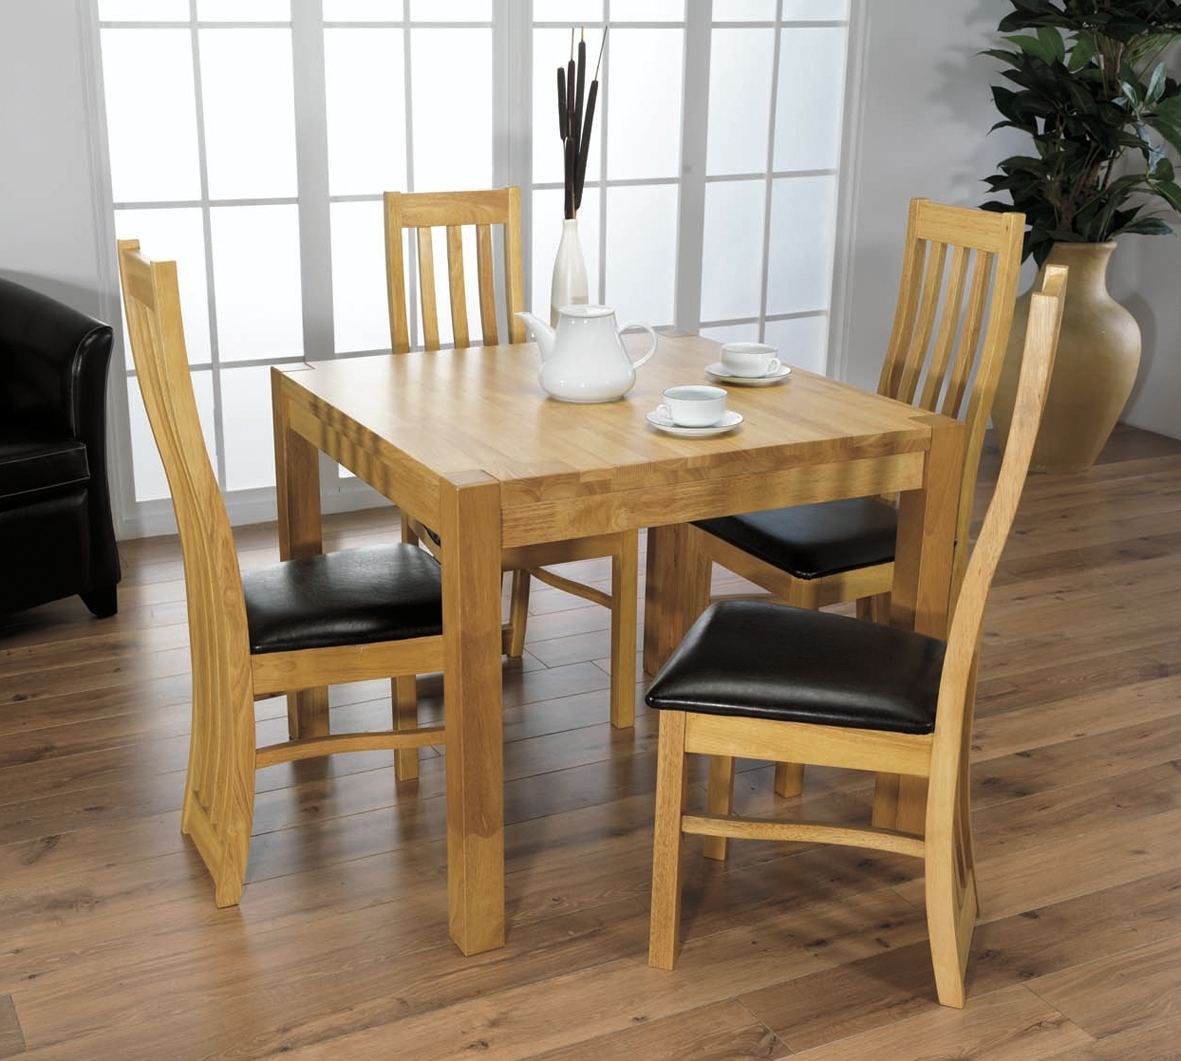 Why A Small Dining Table And Chairs Is A Premium Choice – Blogbeen For Widely Used Small Dining Tables (View 25 of 25)